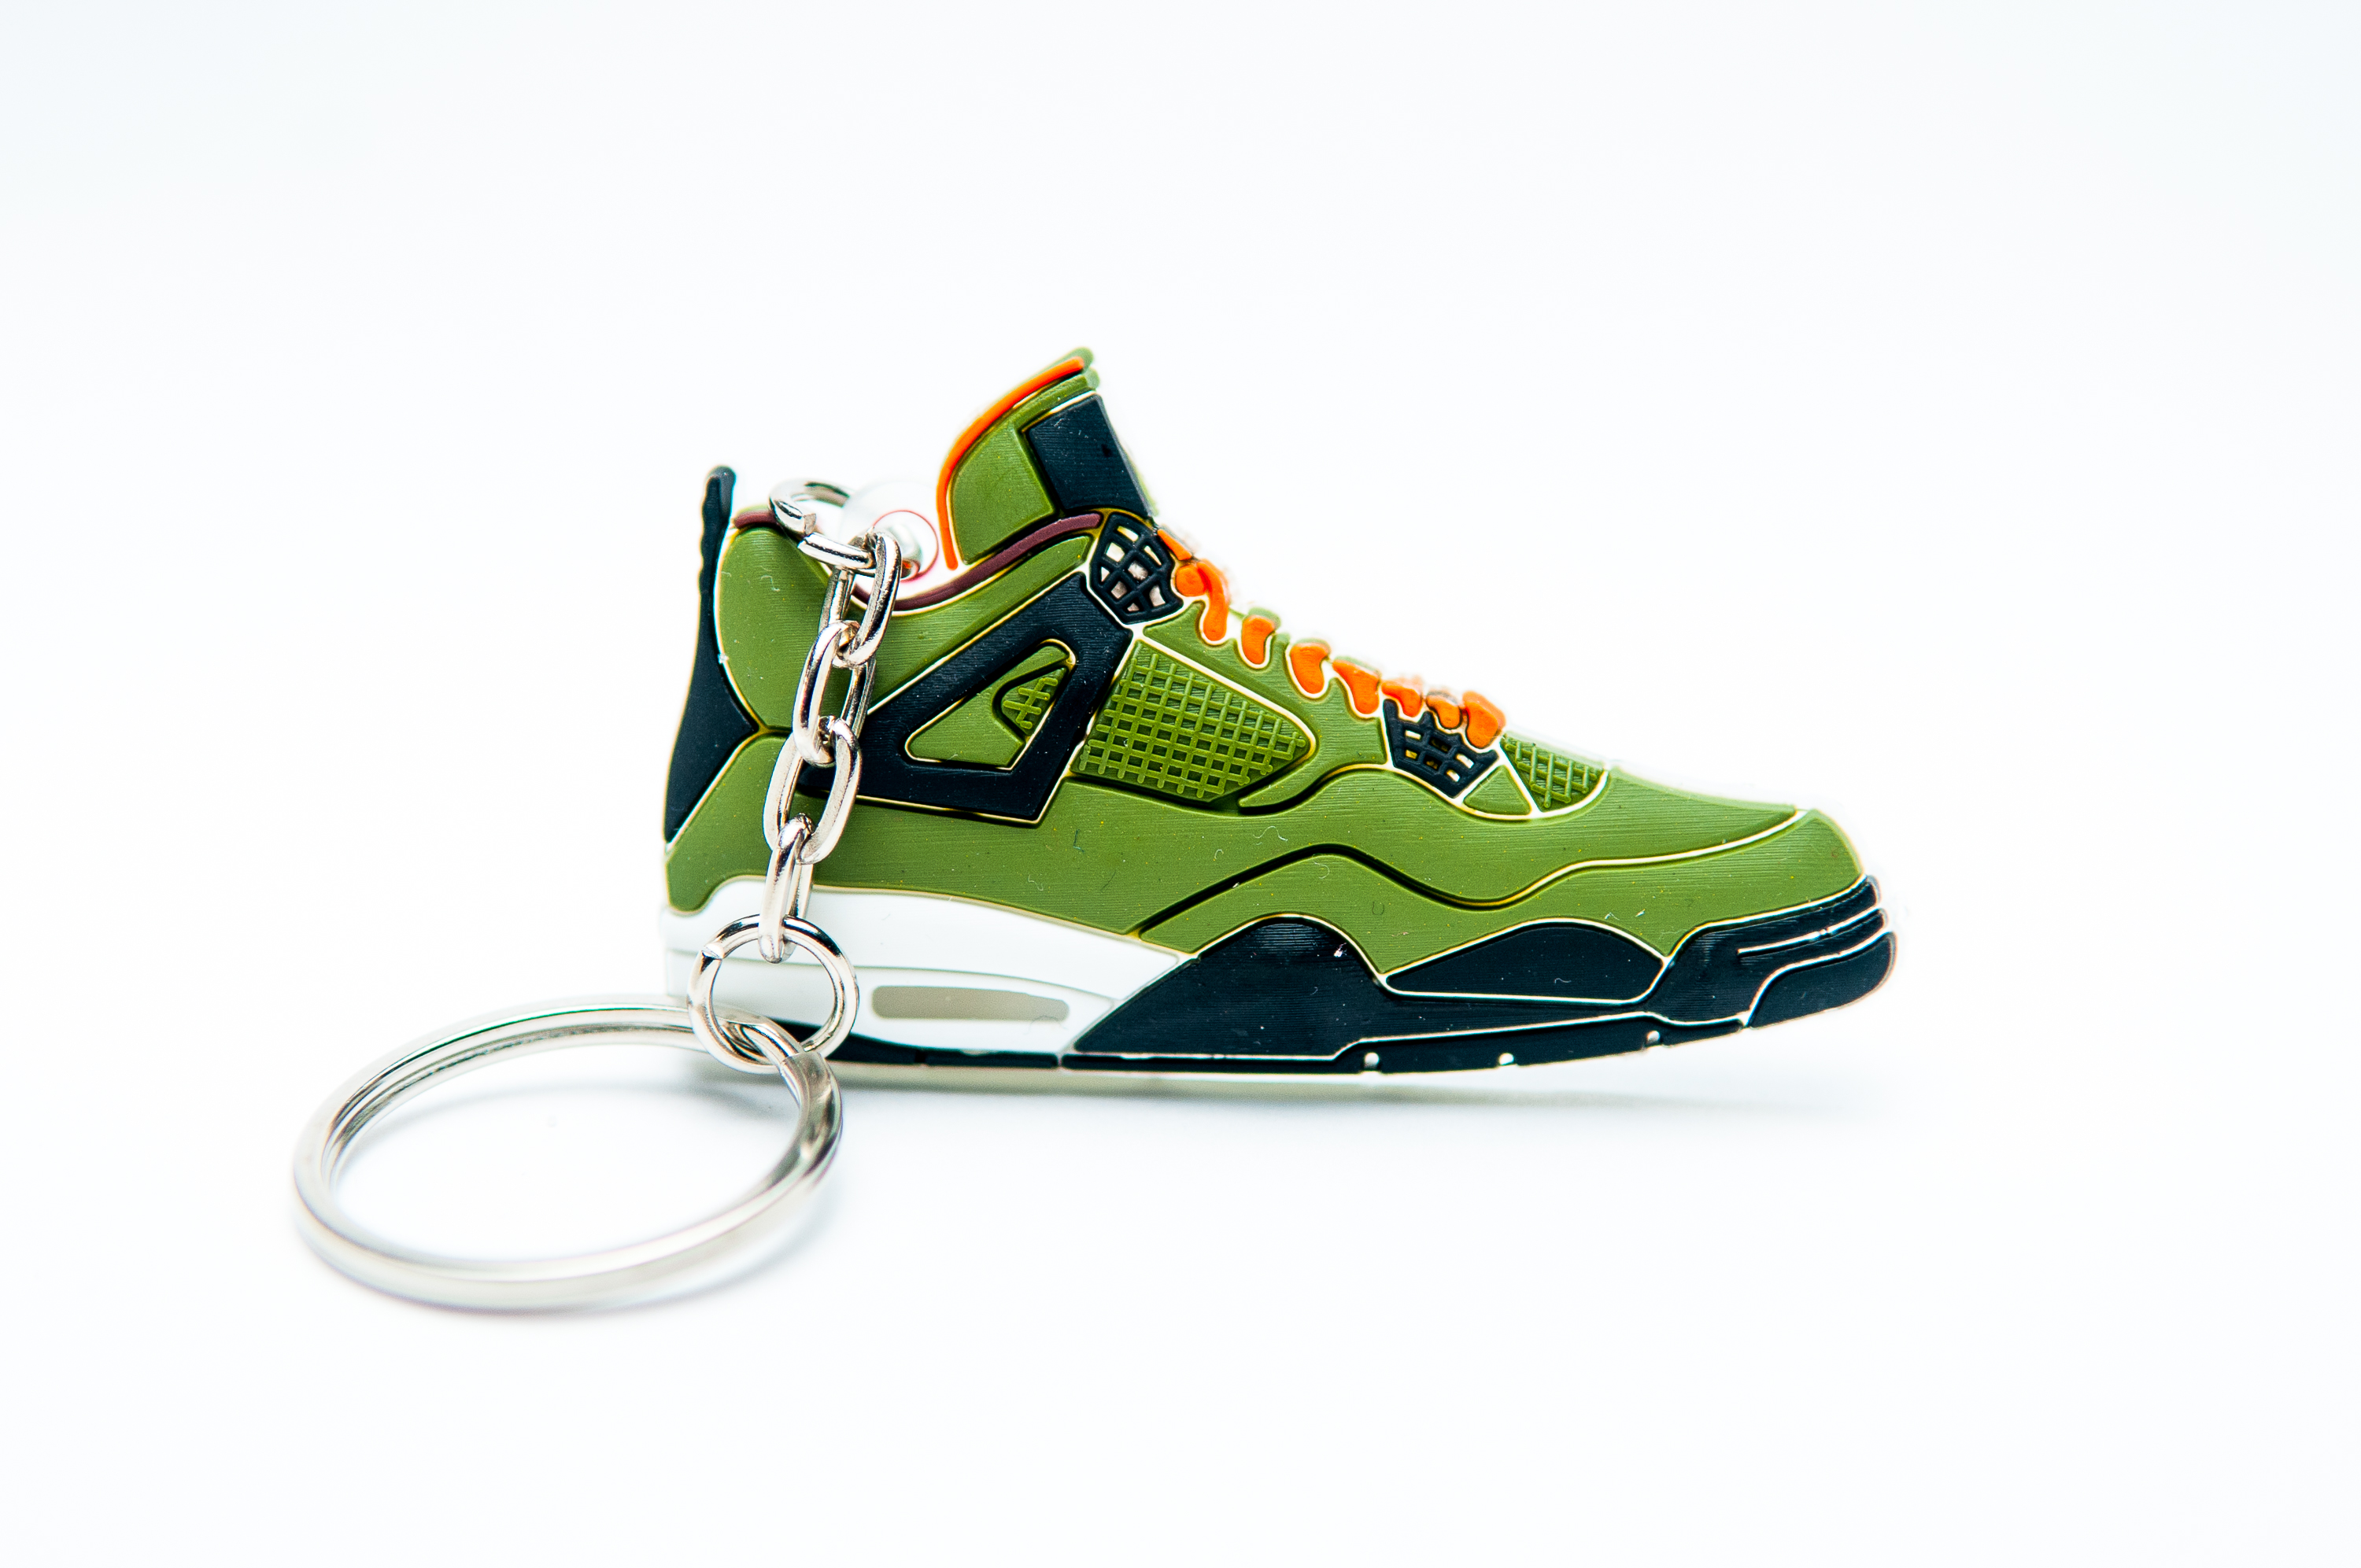 new arrivals ff8d3 768a2 Nike Air Jordan 4 Retro Green Black - Kool Keyrings